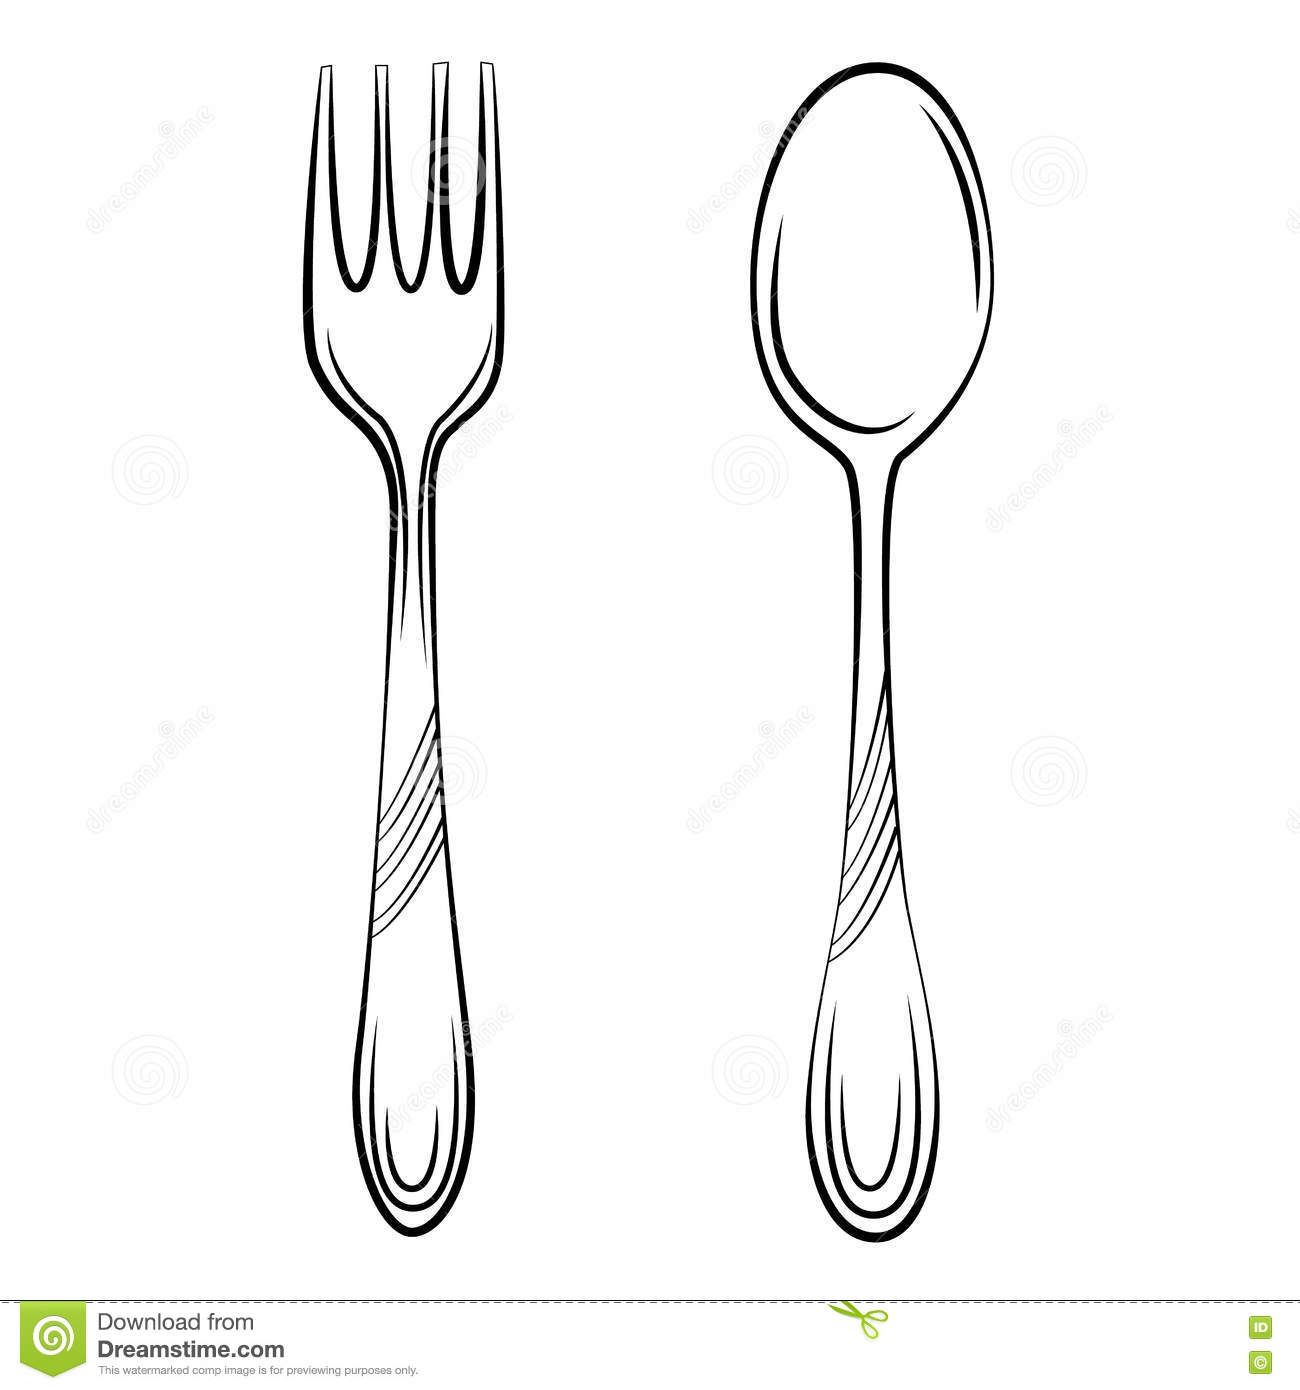 Fork clipart simple. Spoon and sketch illustration